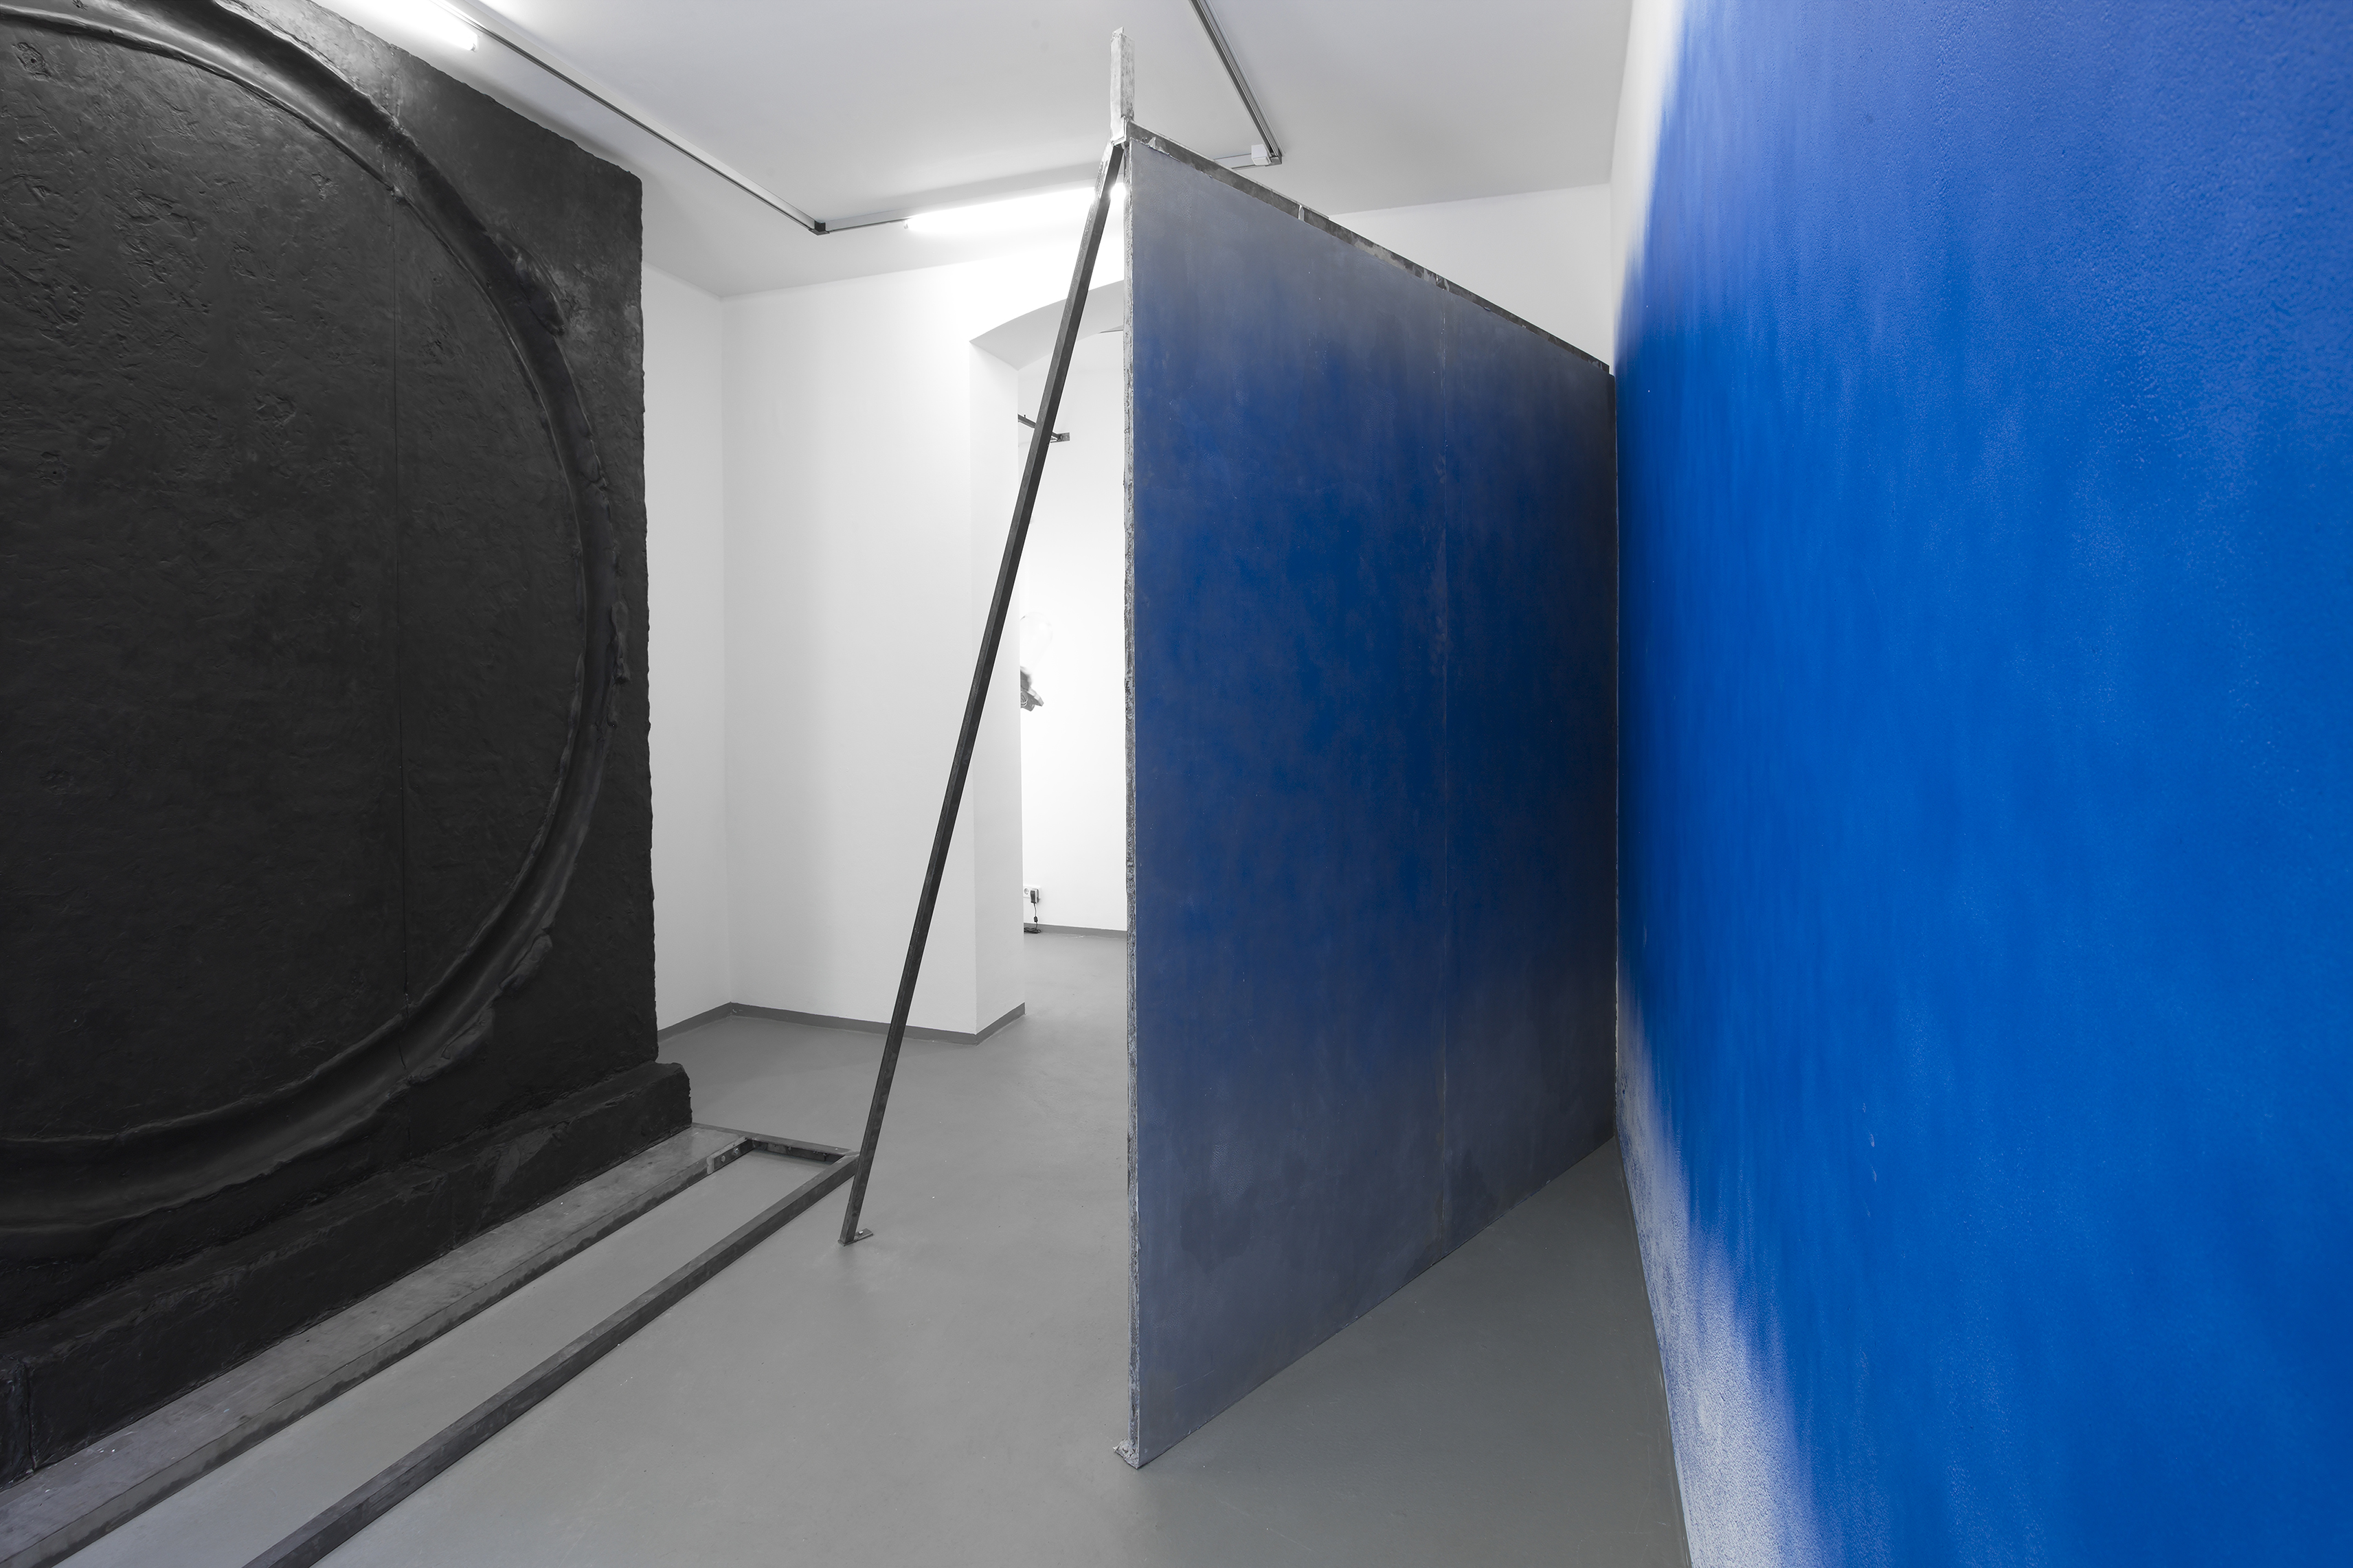 Installation View - God's Biometric Data, 2019 - Exhibition by Erik Andersen and Amit Goffer at Diskurs Berlin - Black sculpture and blue room installation by Erik Andersen